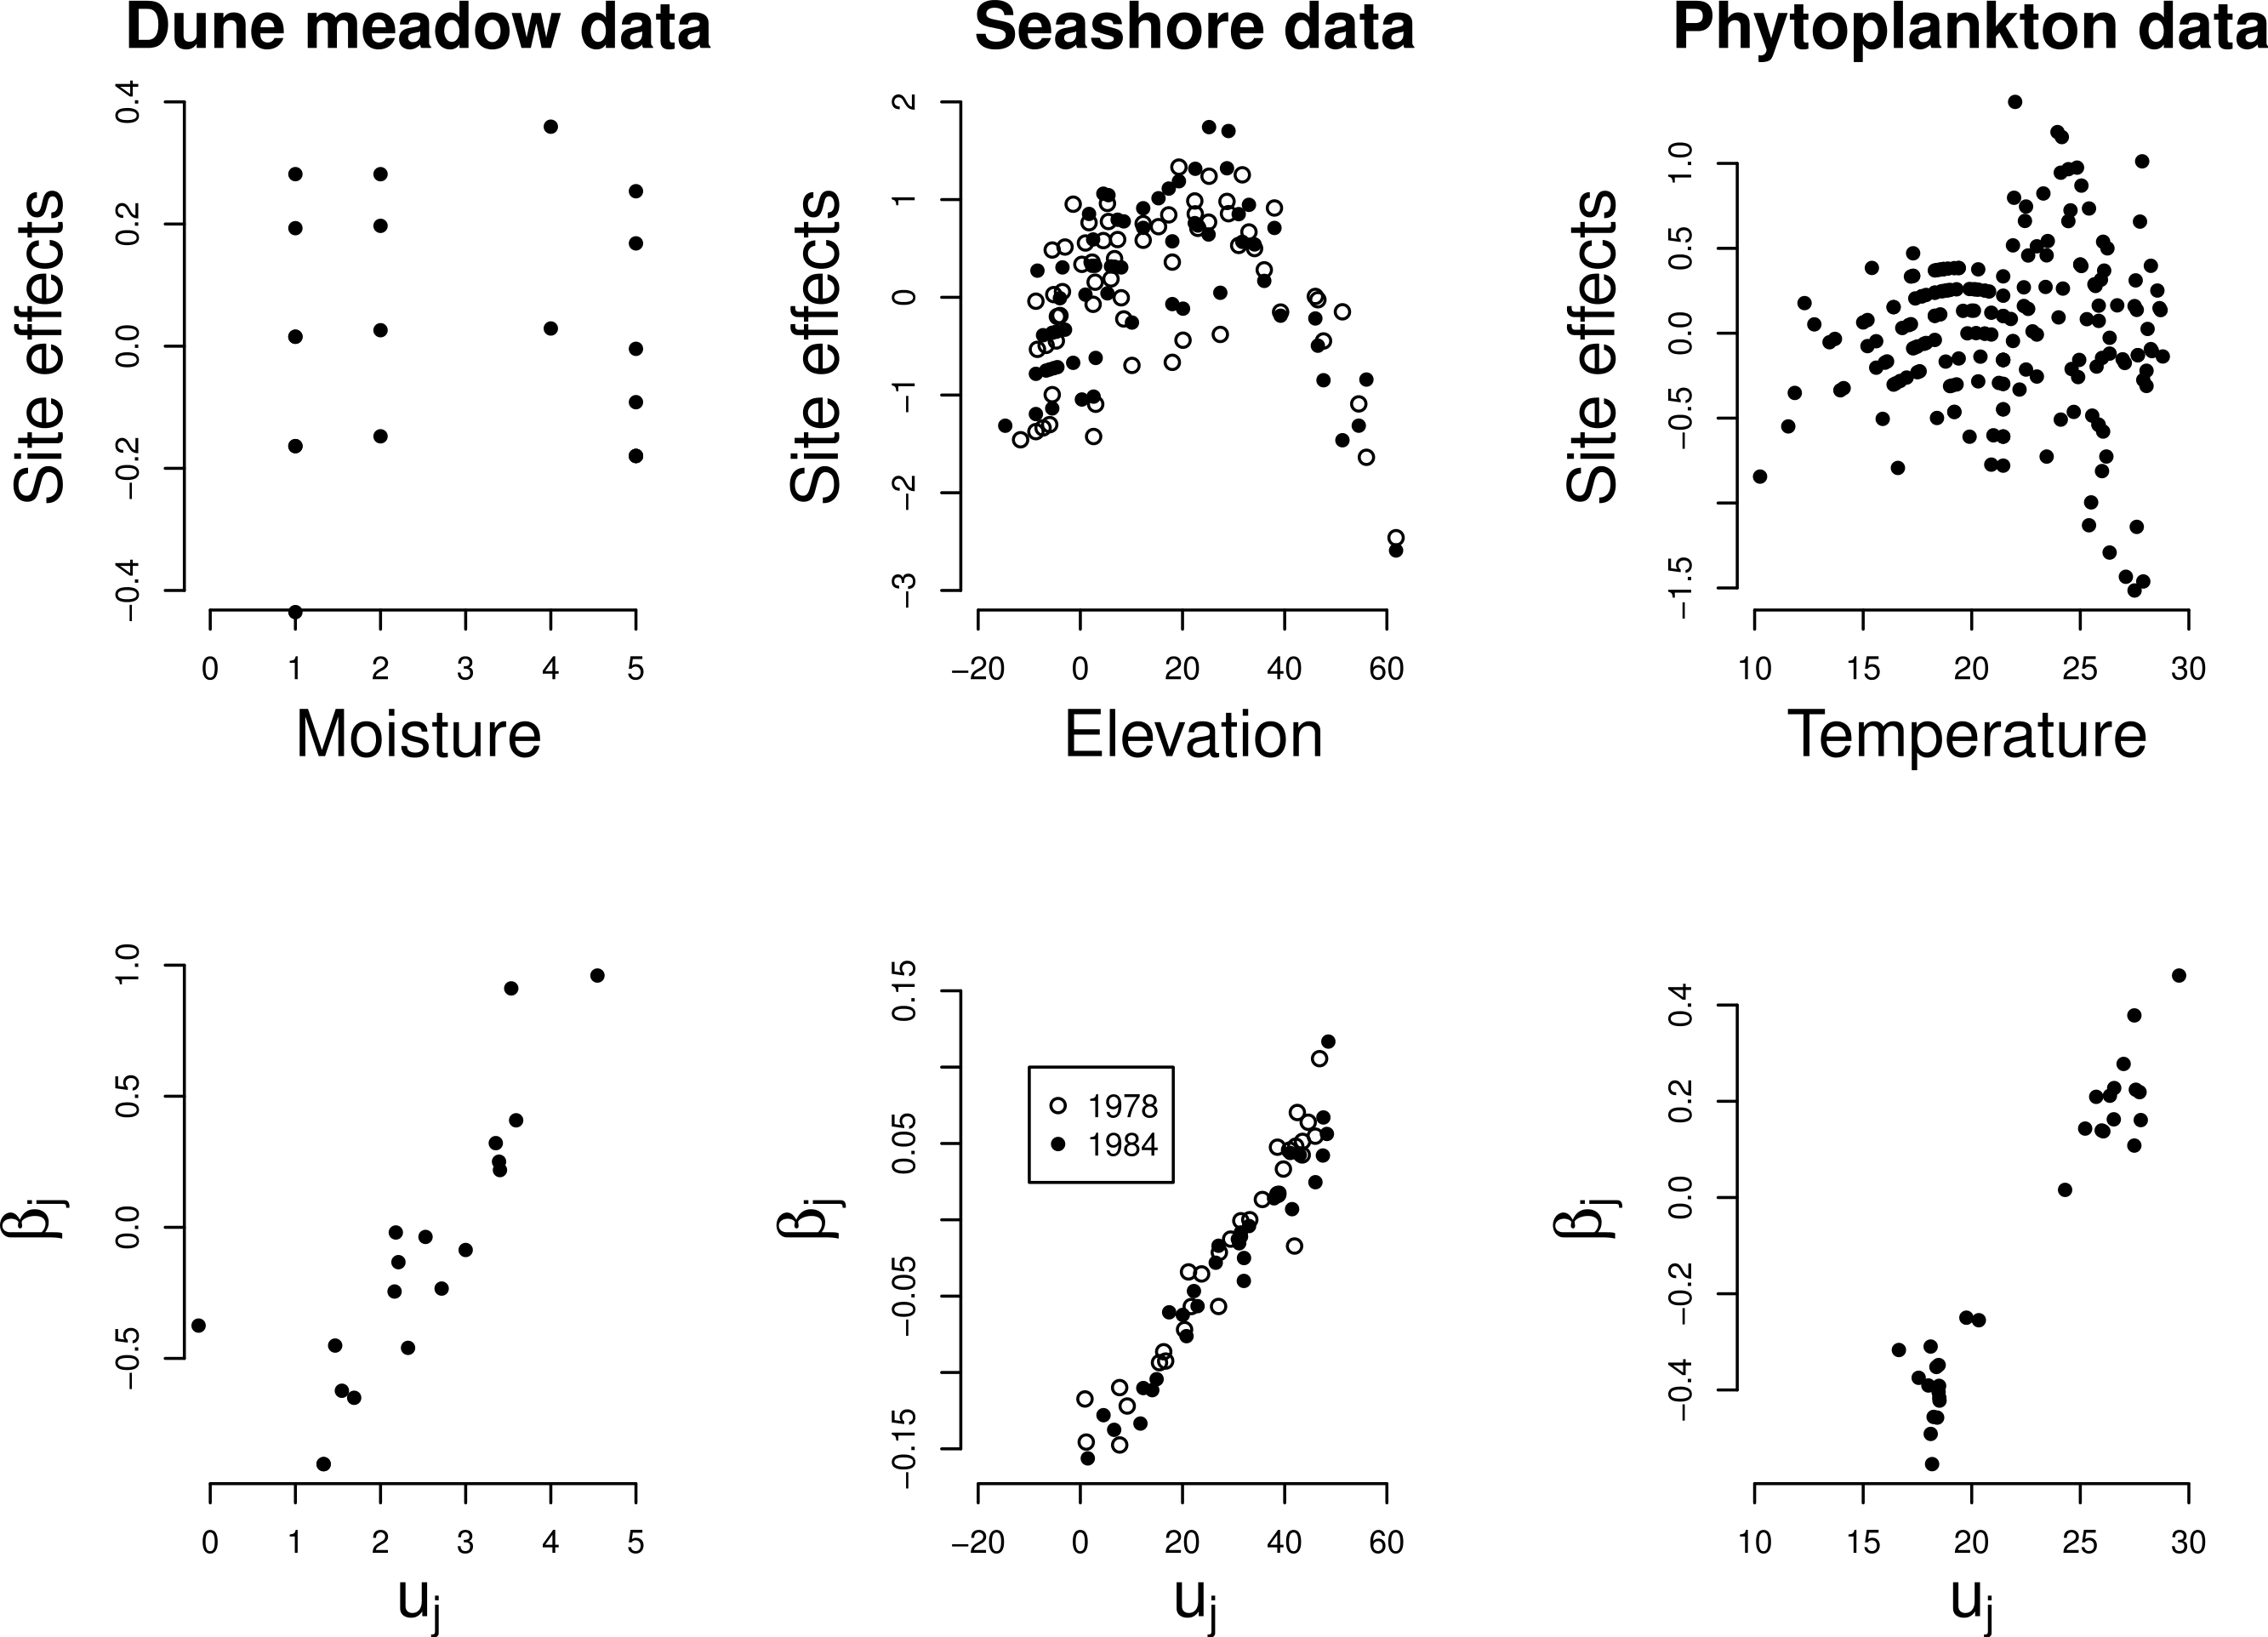 Generalized linear mixed models can detect unimodal species